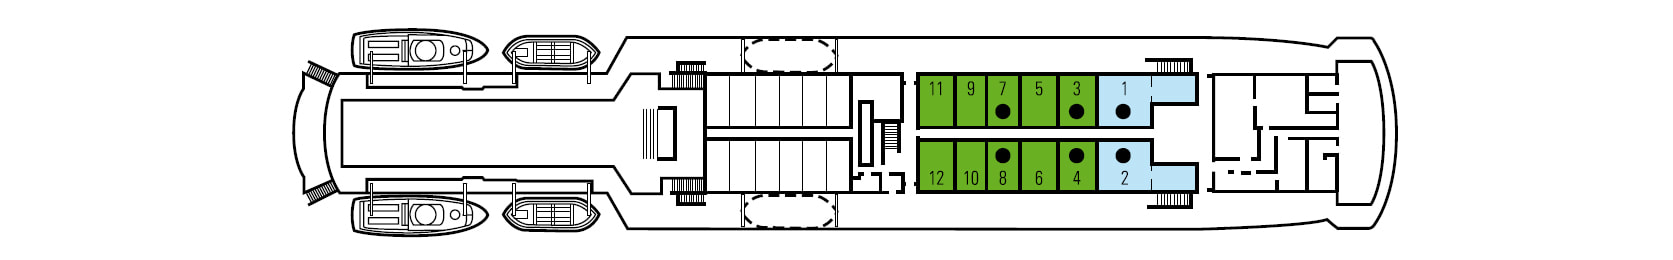 Berlin deck plan